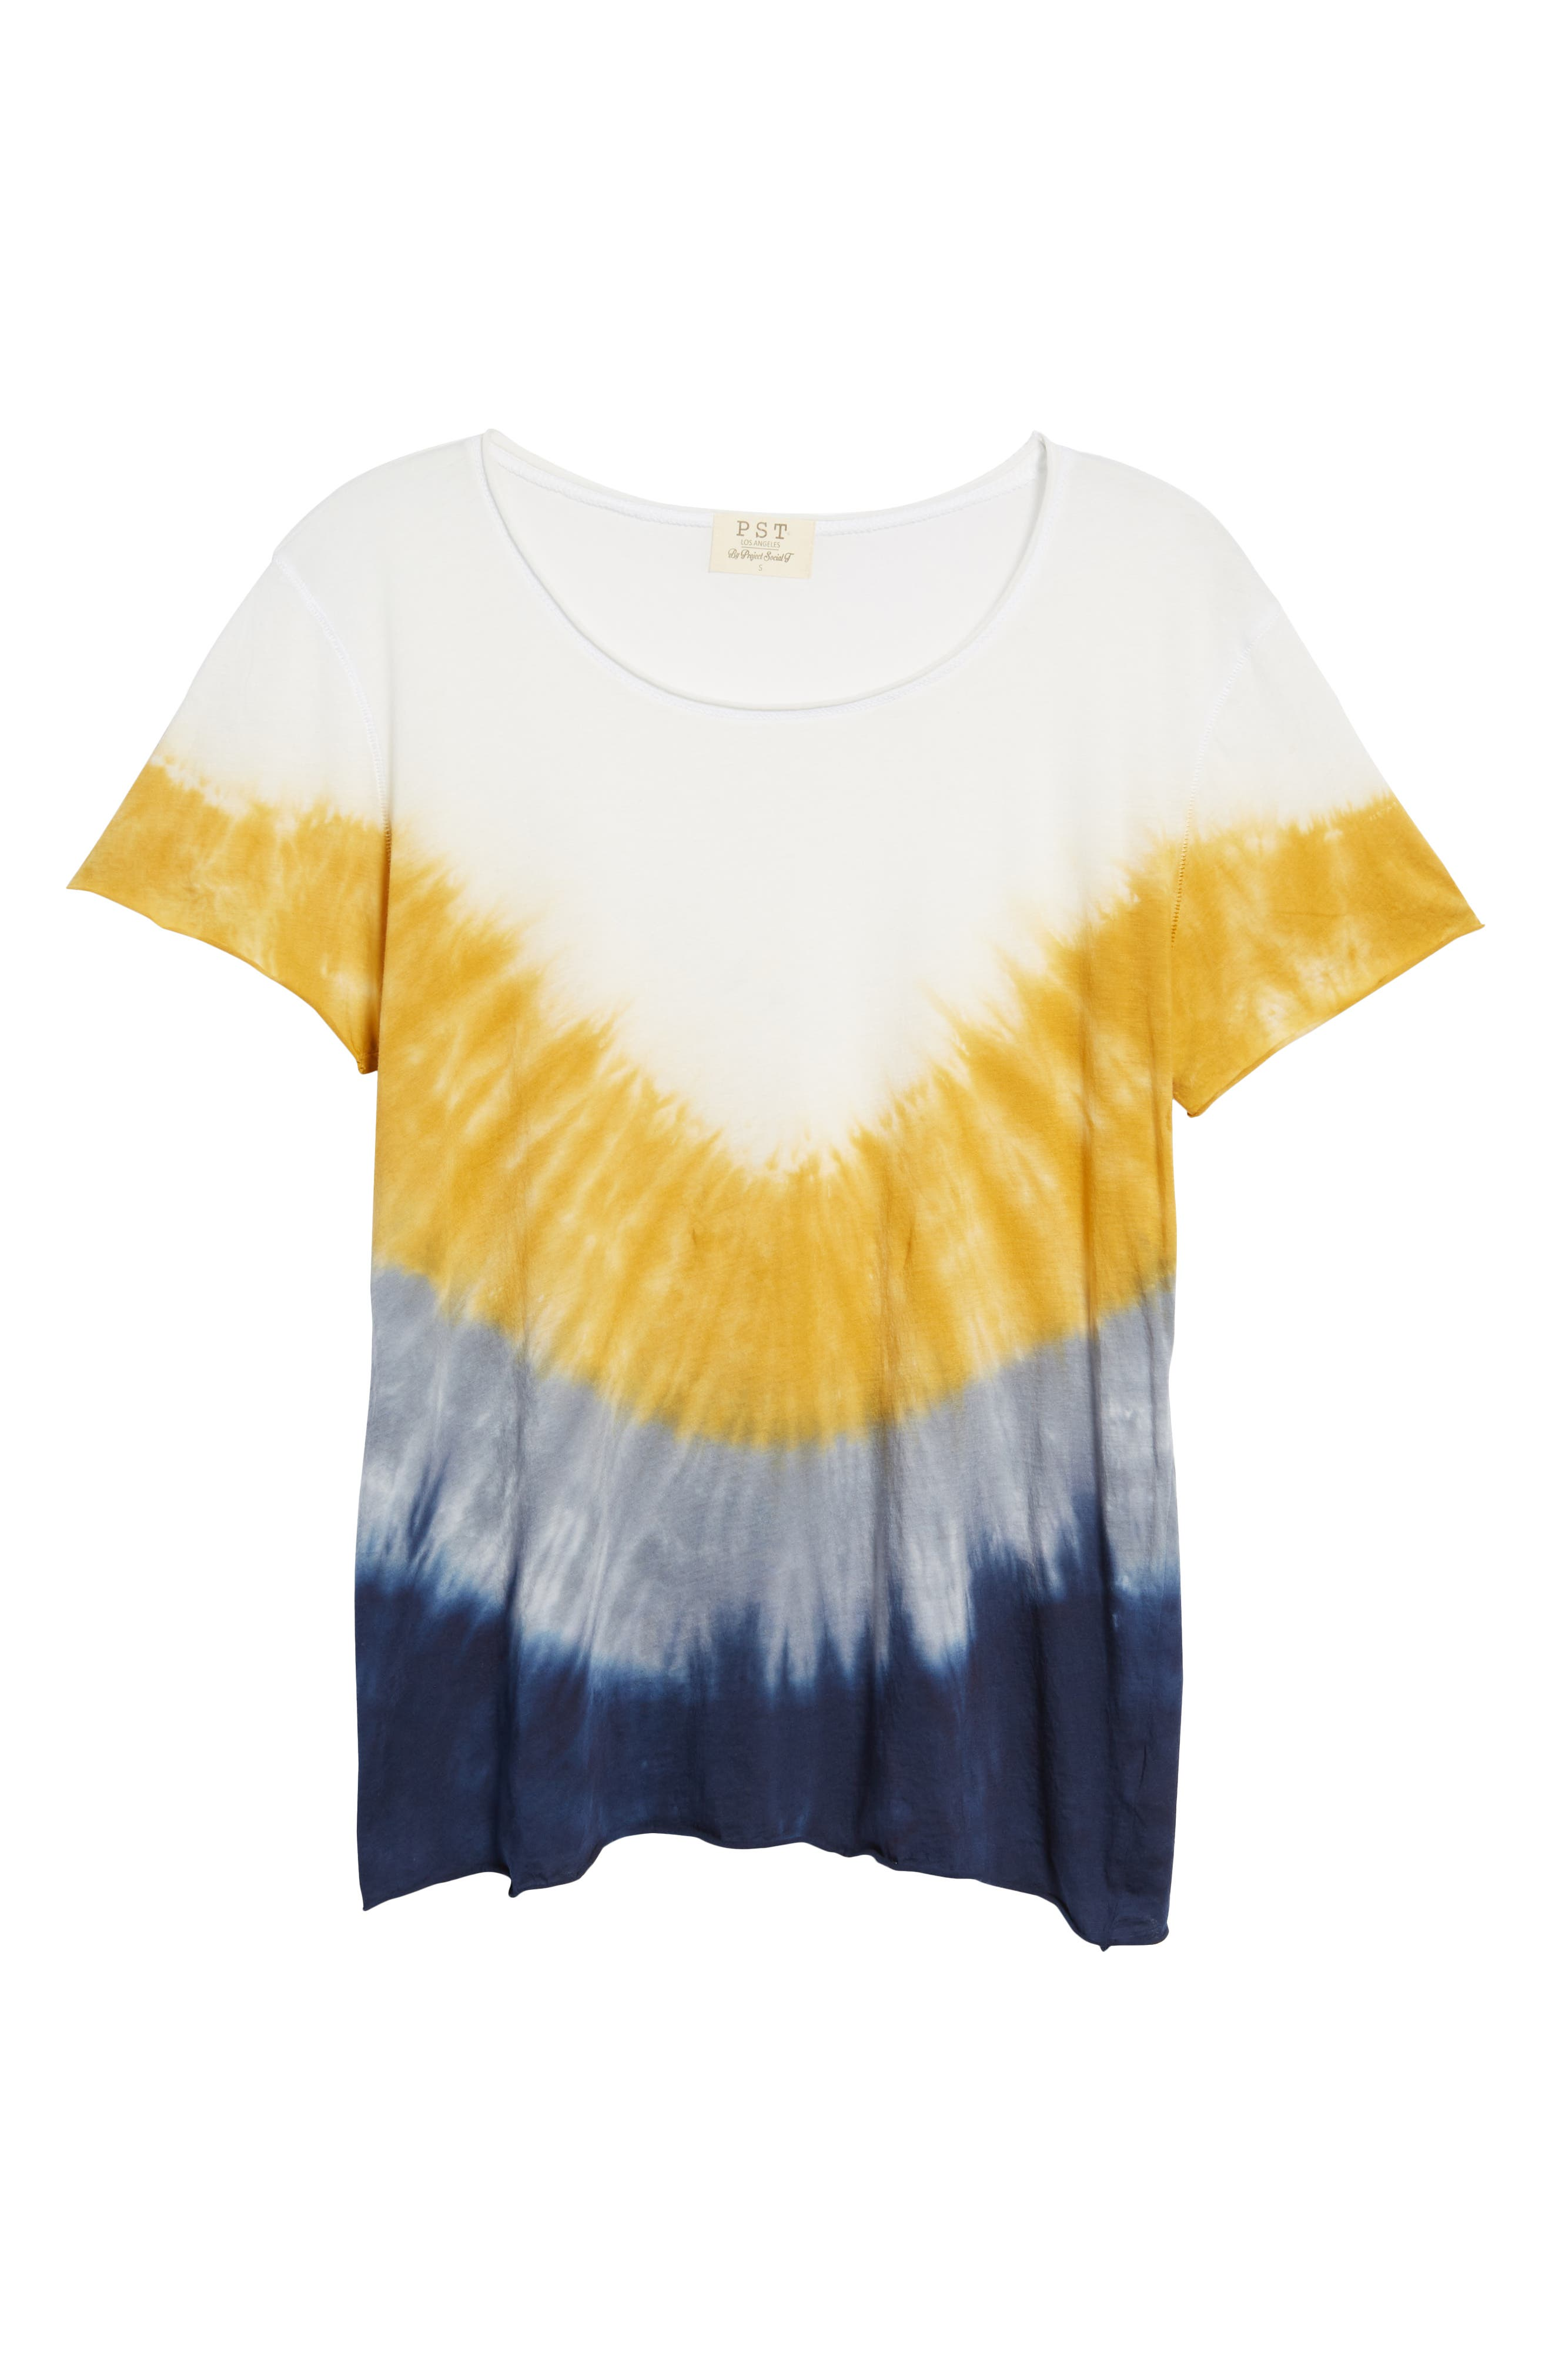 Tie Dye Tee,                             Alternate thumbnail 7, color,                             Ivory/ Yellow/ Blue A/ S